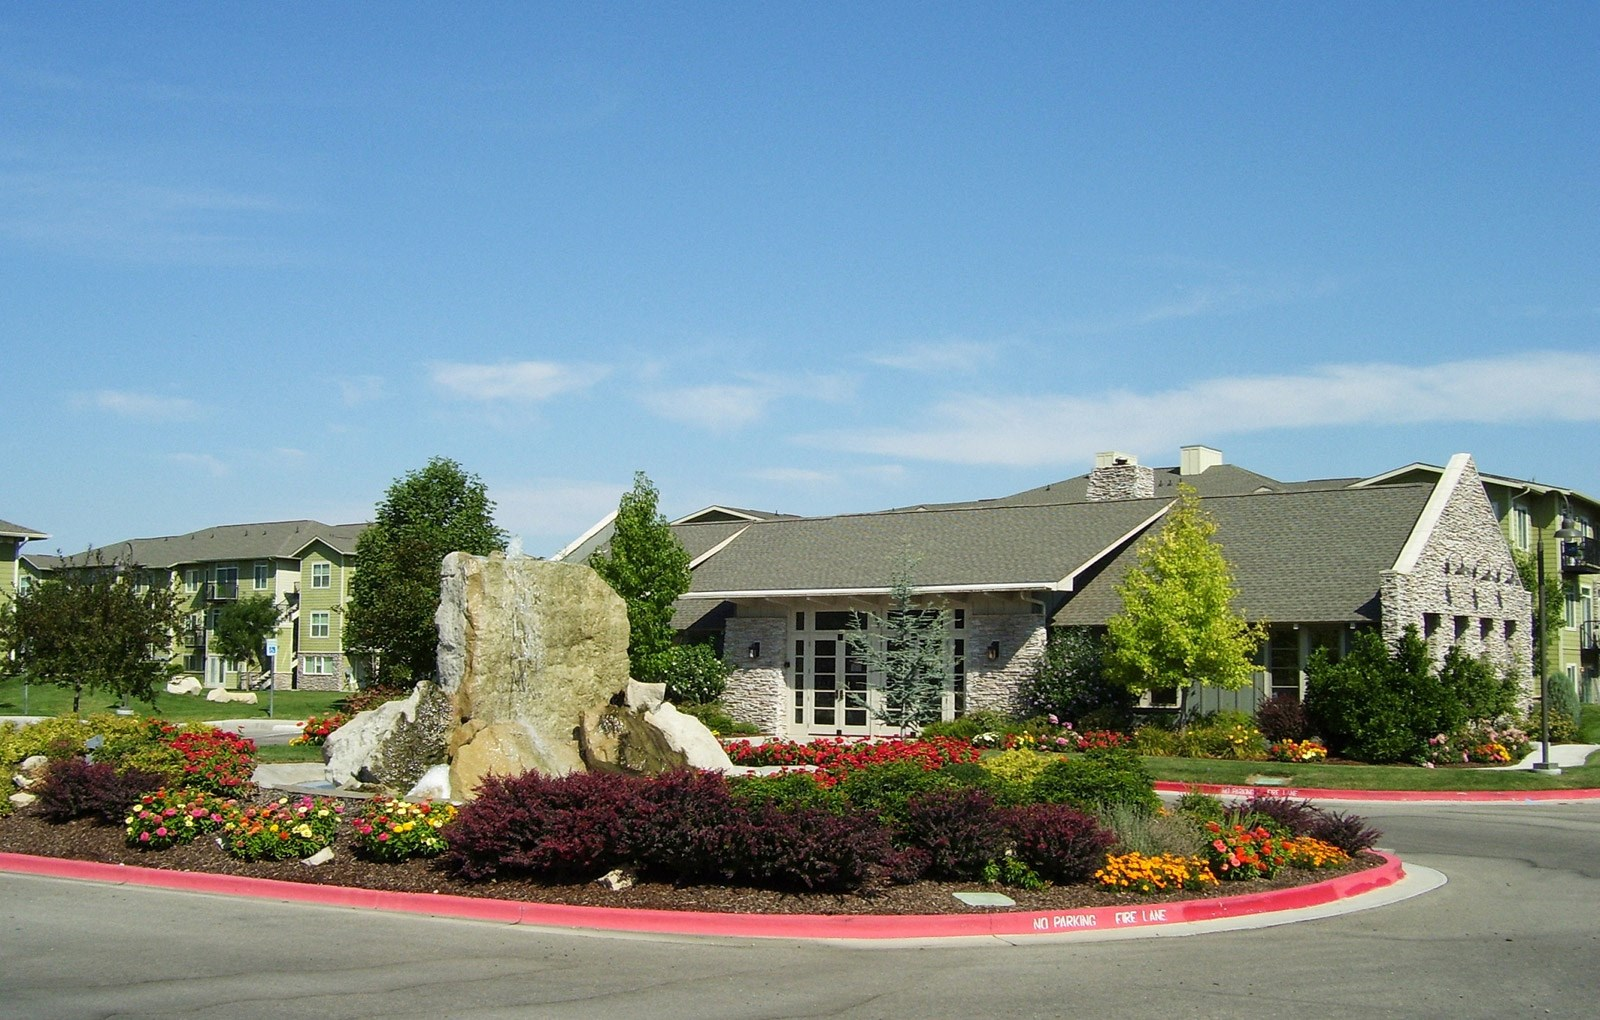 lodge at maple grove apartments in boise  id 1 bedroom apartments near boise state university 1 bedroom apartments for rent boise idaho